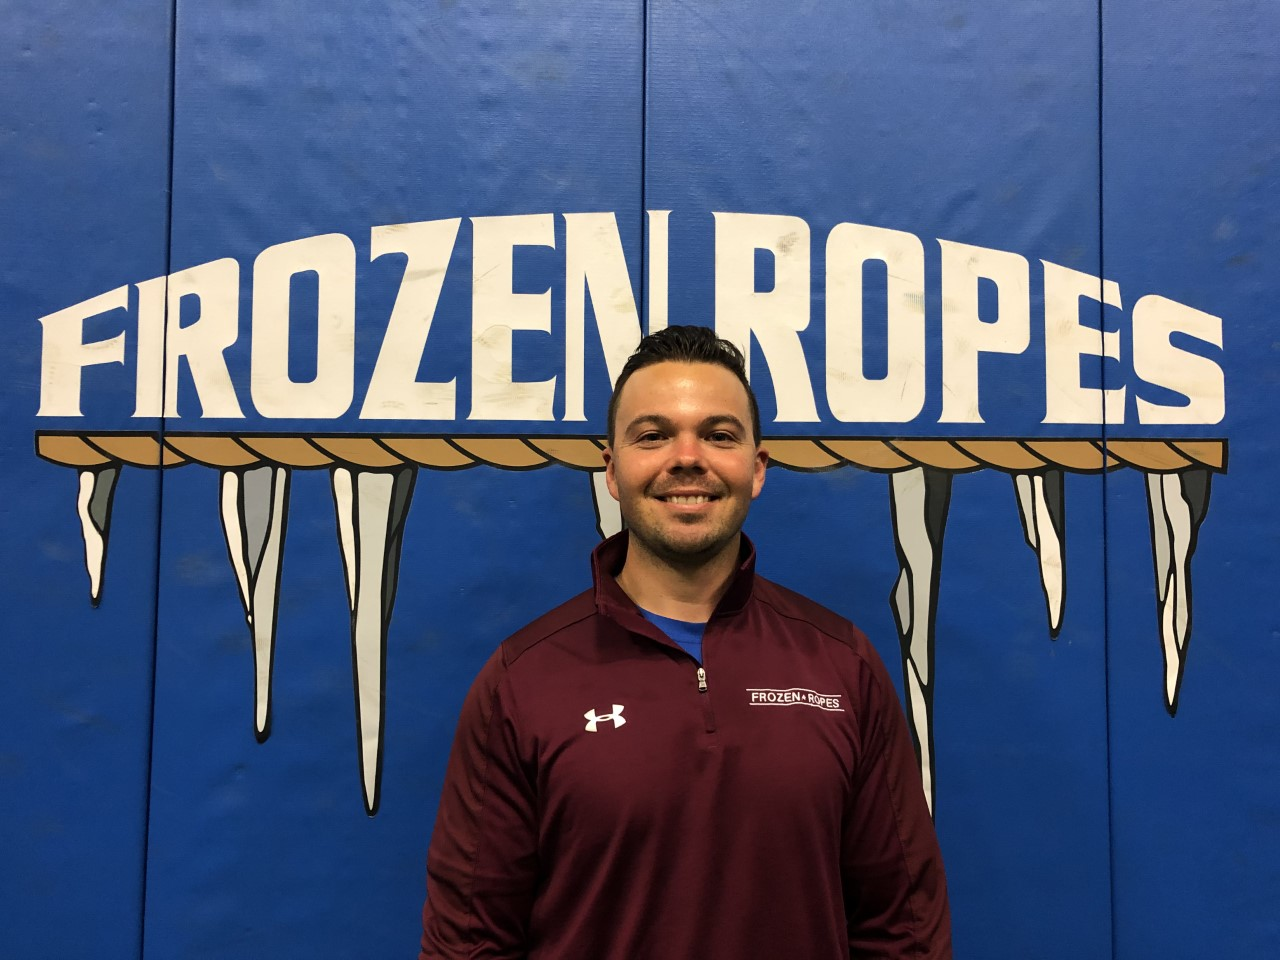 Jon Canazon, Instructor at Frozen Ropes